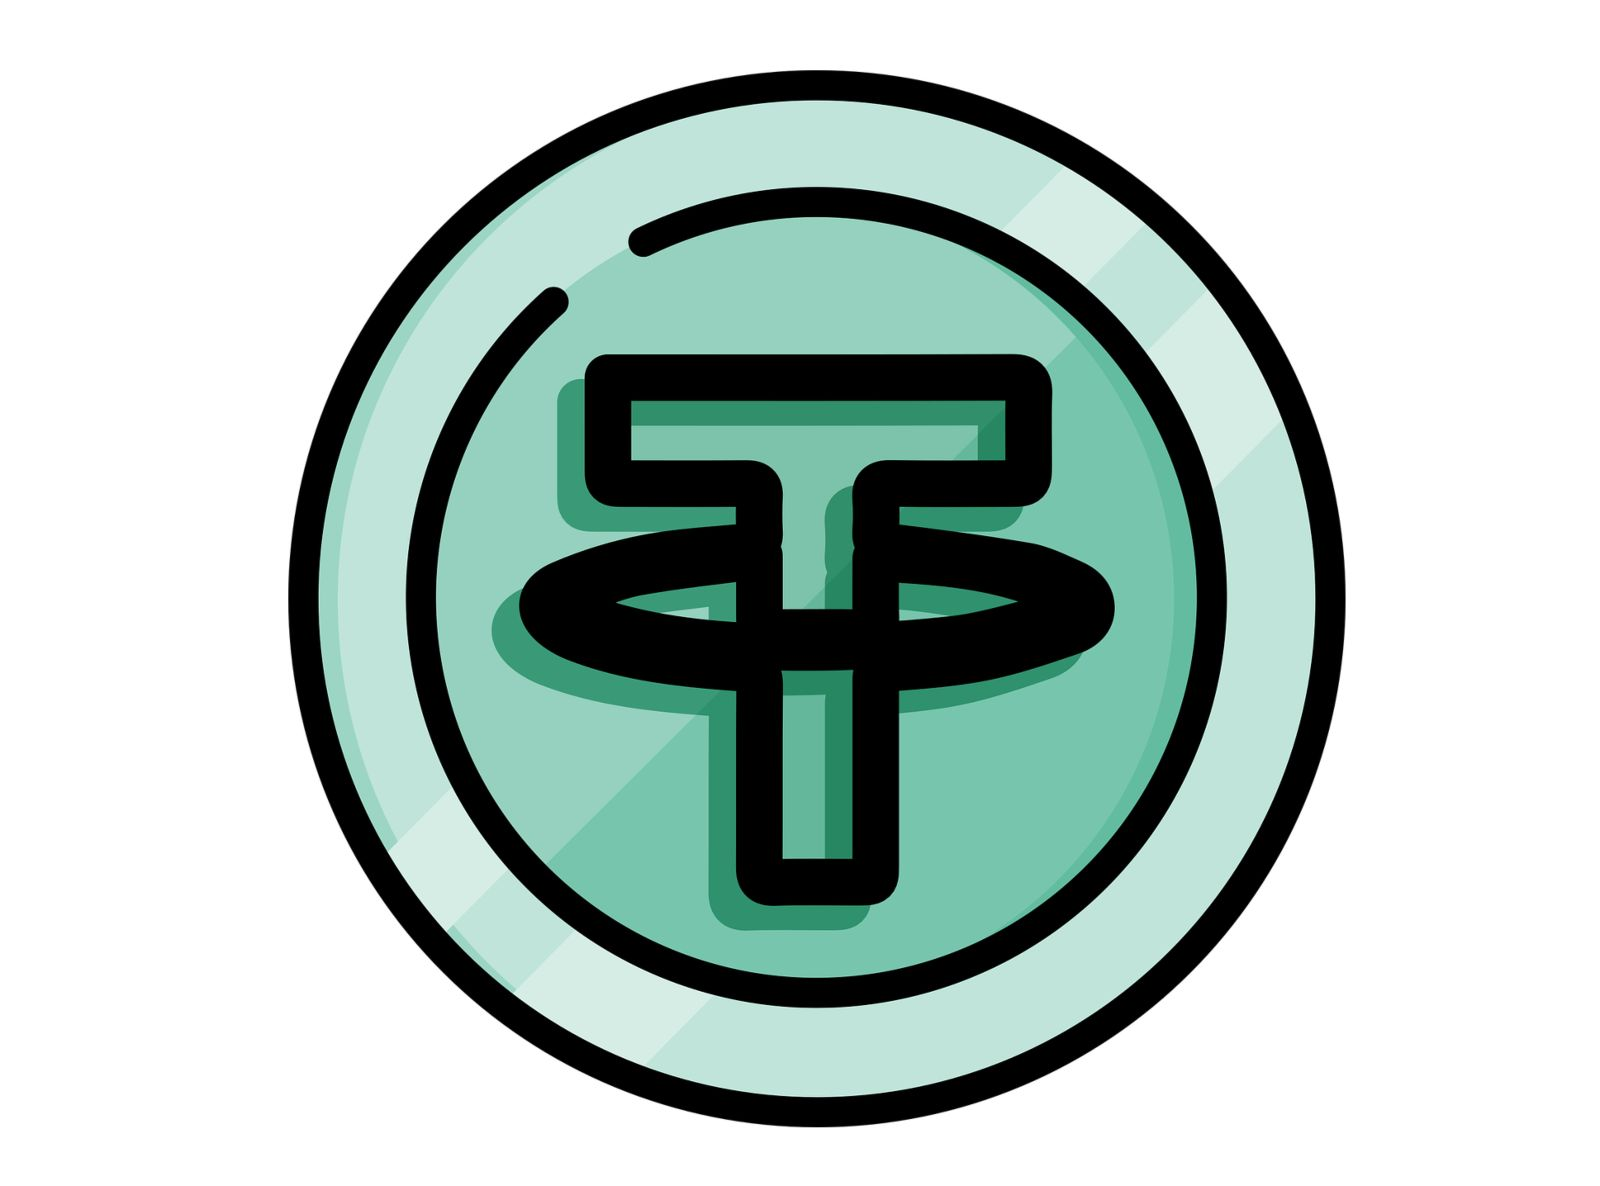 Tether's New Community Organization Aims to Boost USDT's Global Use